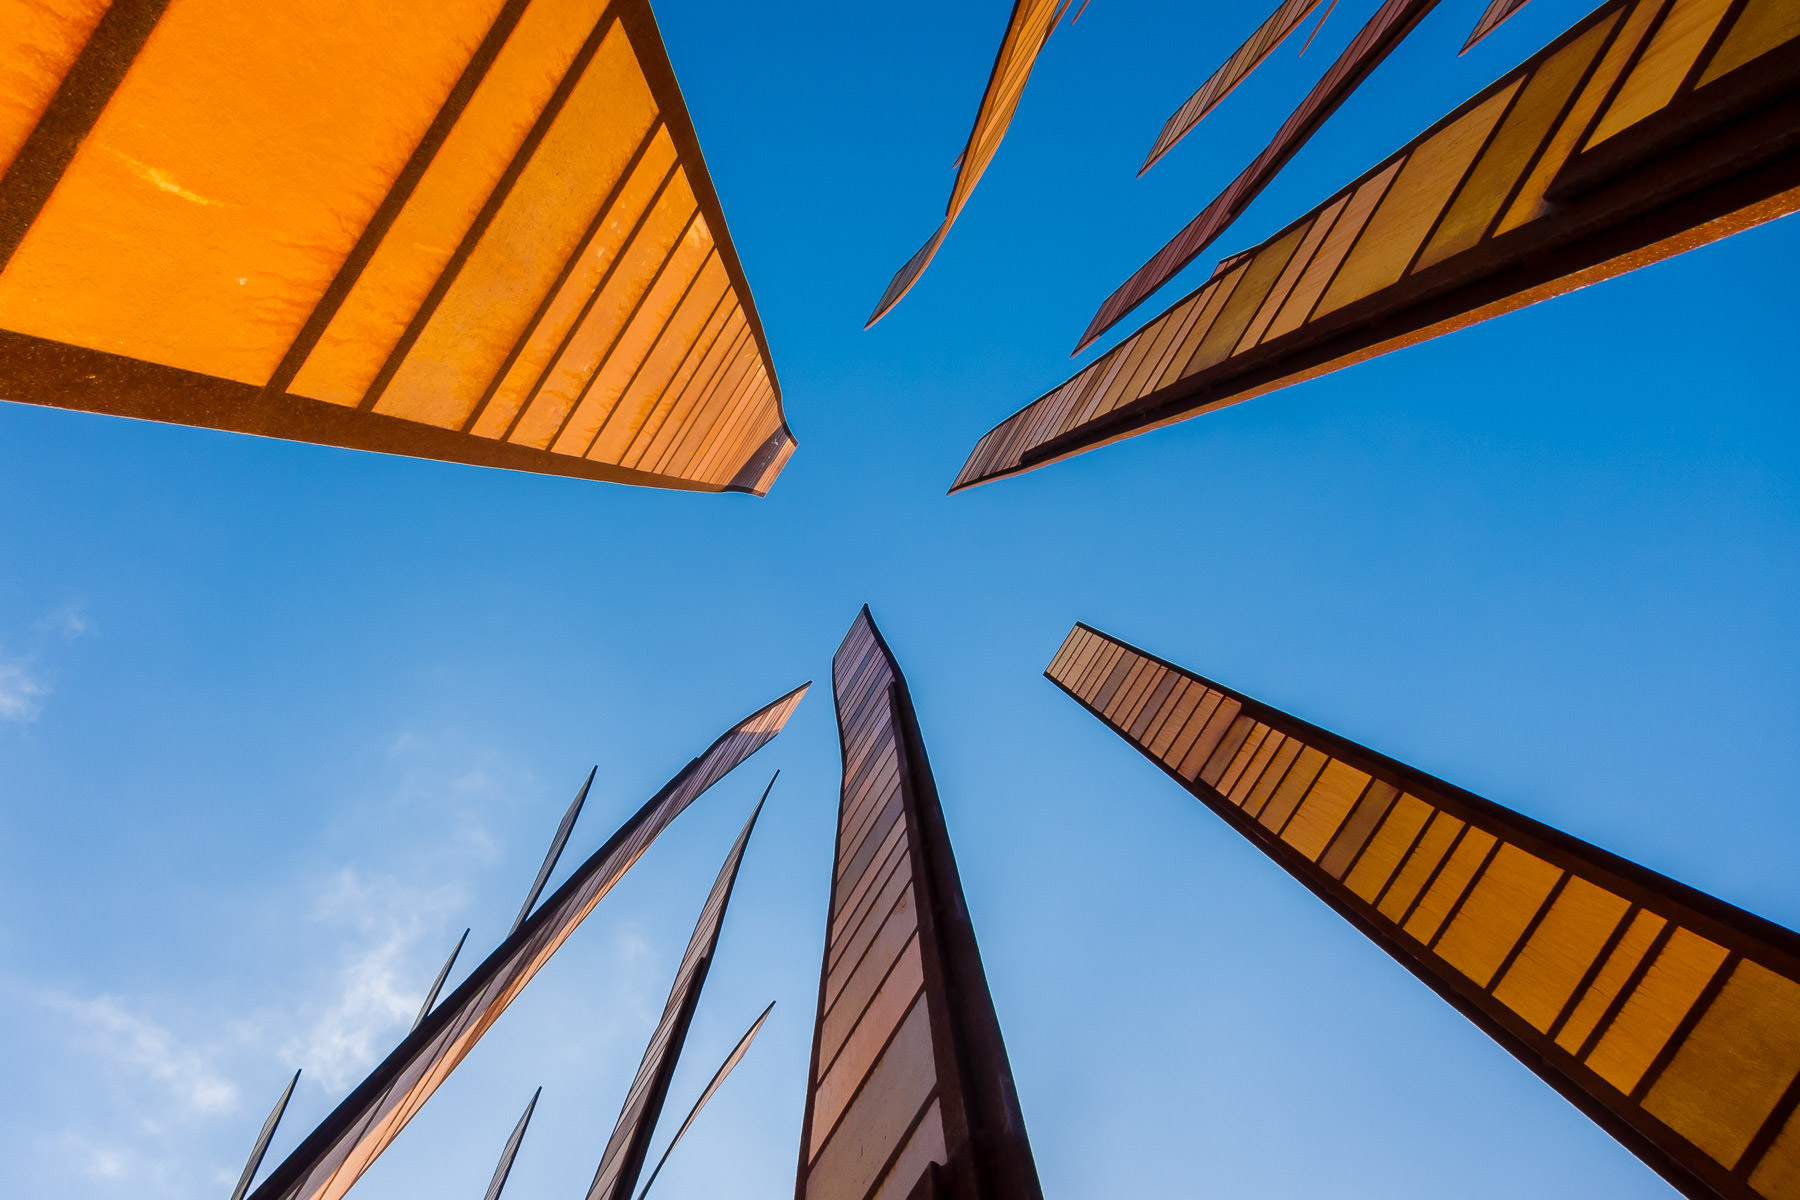 Grass Blades, a sculpture adjacent to the Experience Music Project, rises into the blue sky of Seattle.